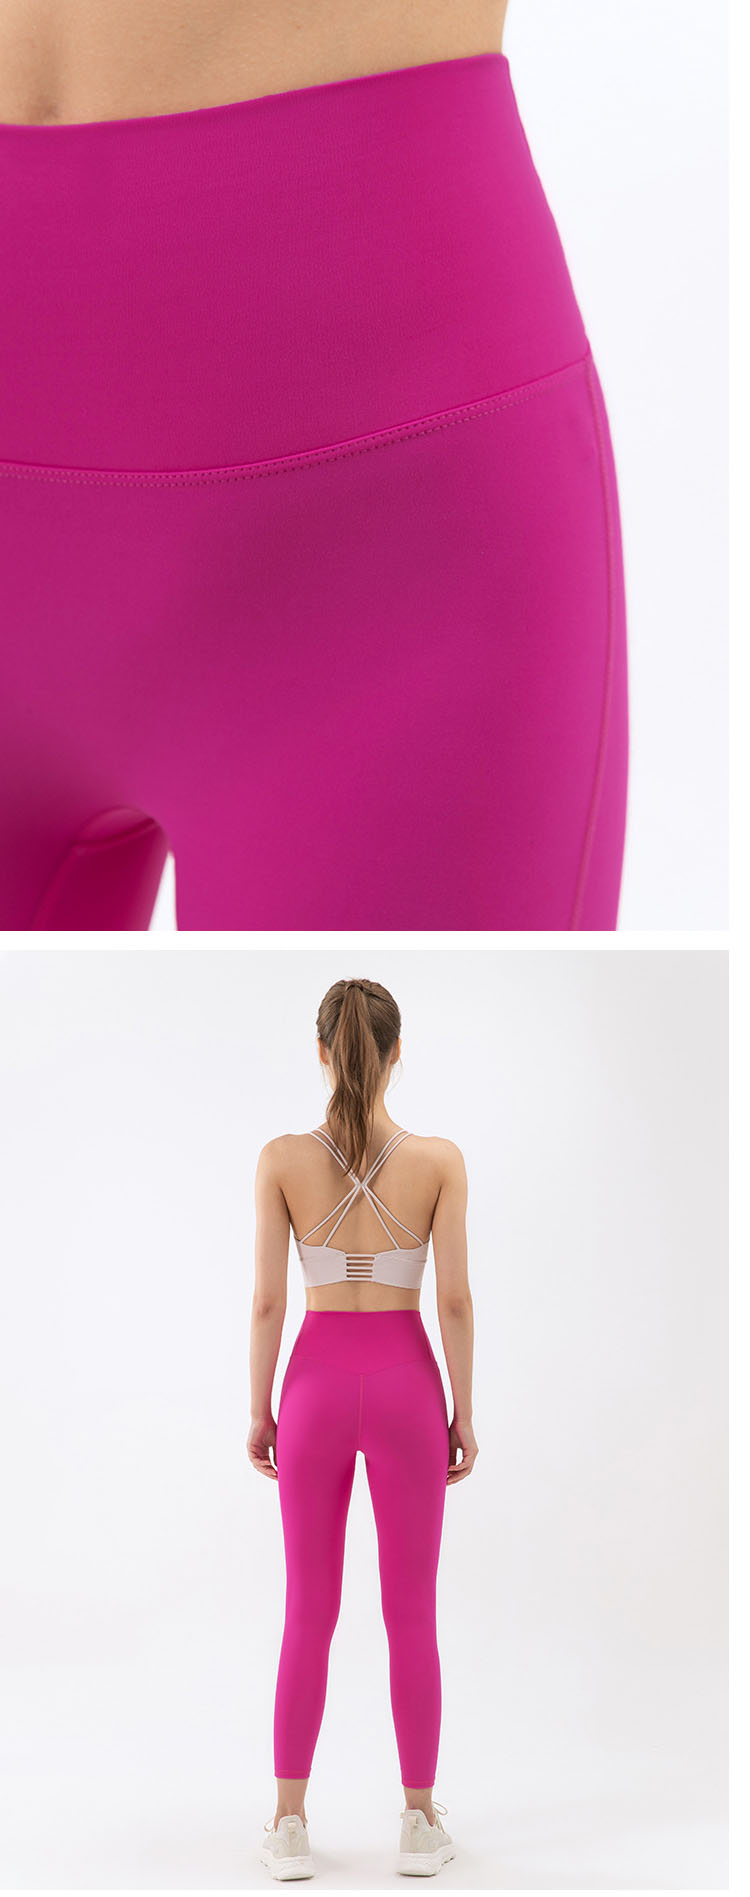 The buttocks are designed to lift up the buttocks to fit the curve of the body.